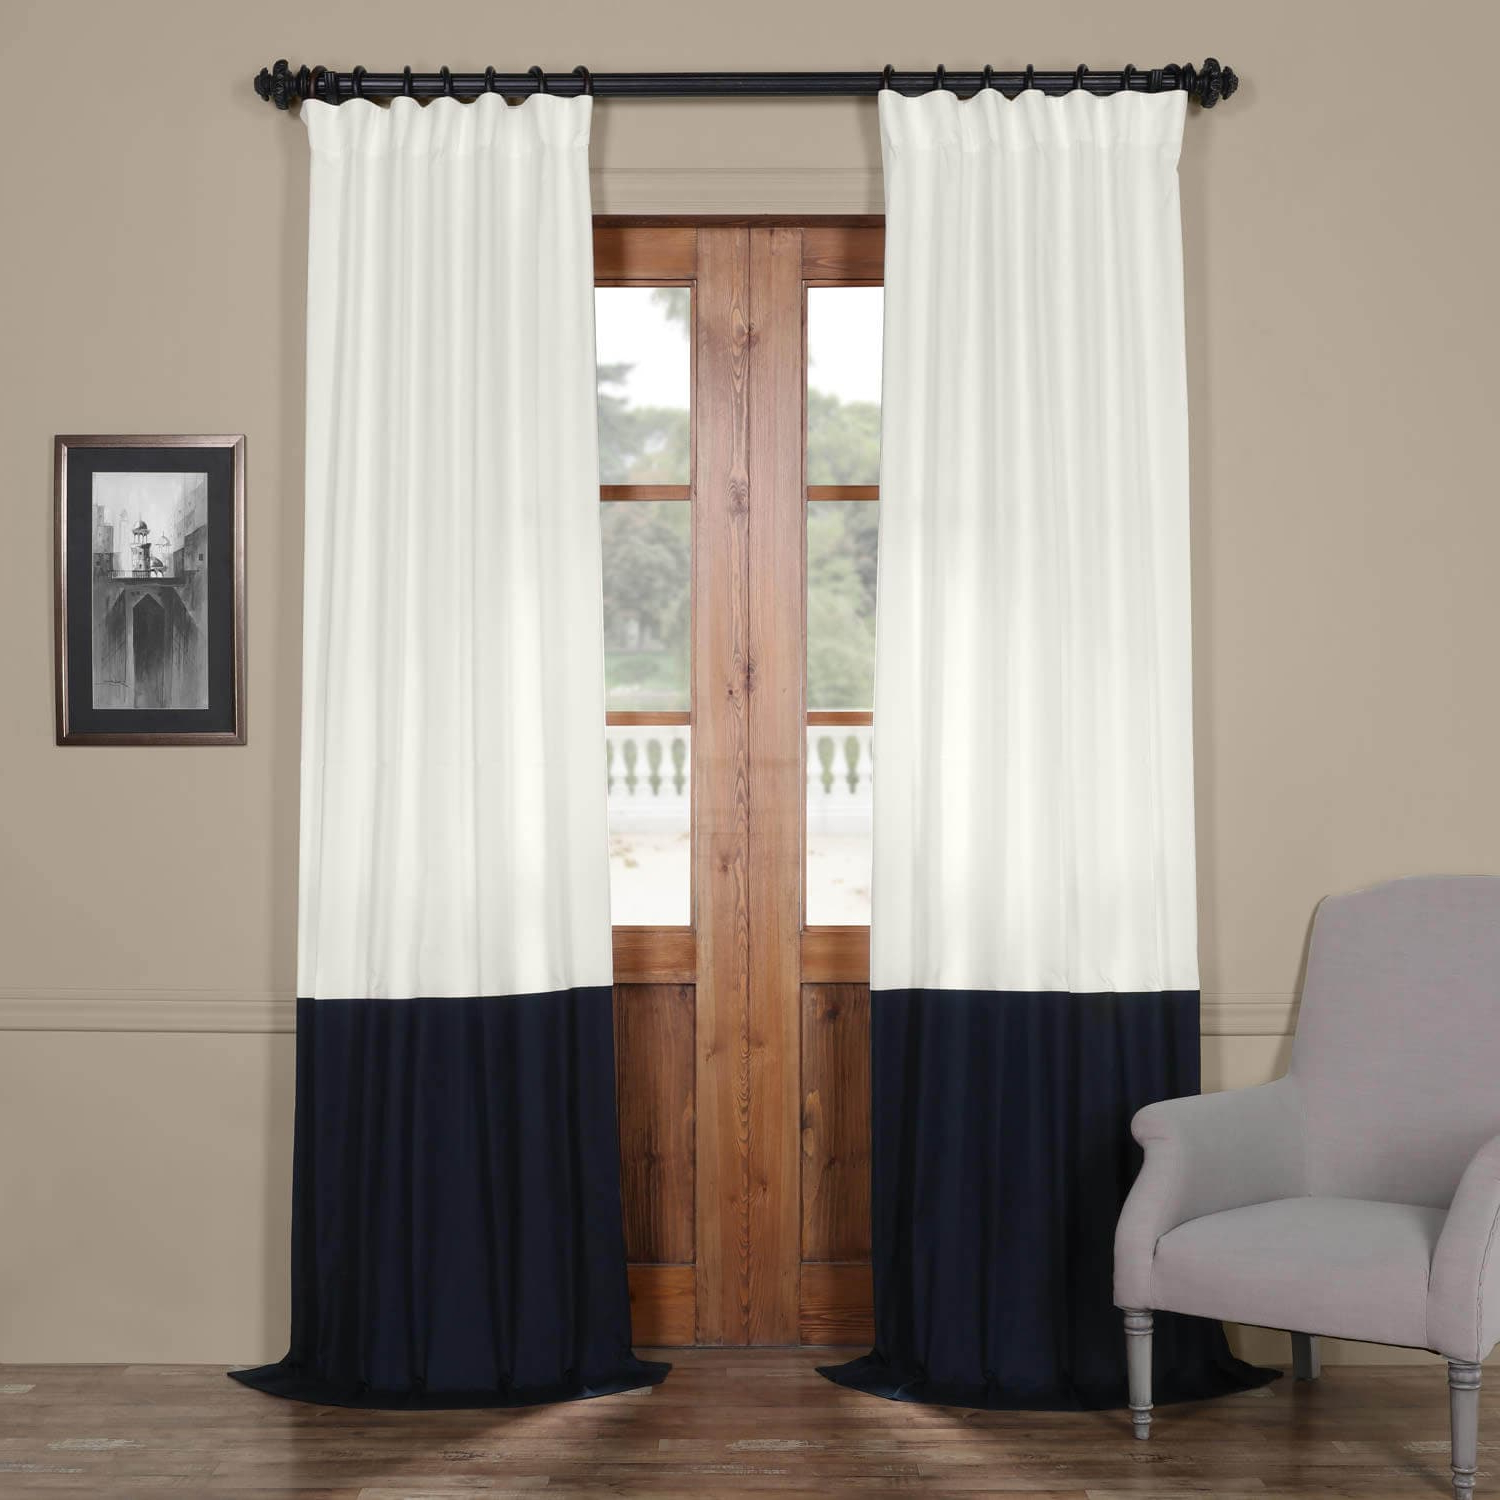 Fresh Popcorn And Polo Navy Horizontal Colorblock Panama Curtain For Newest Vertical Colorblock Panama Curtains (Gallery 8 of 20)